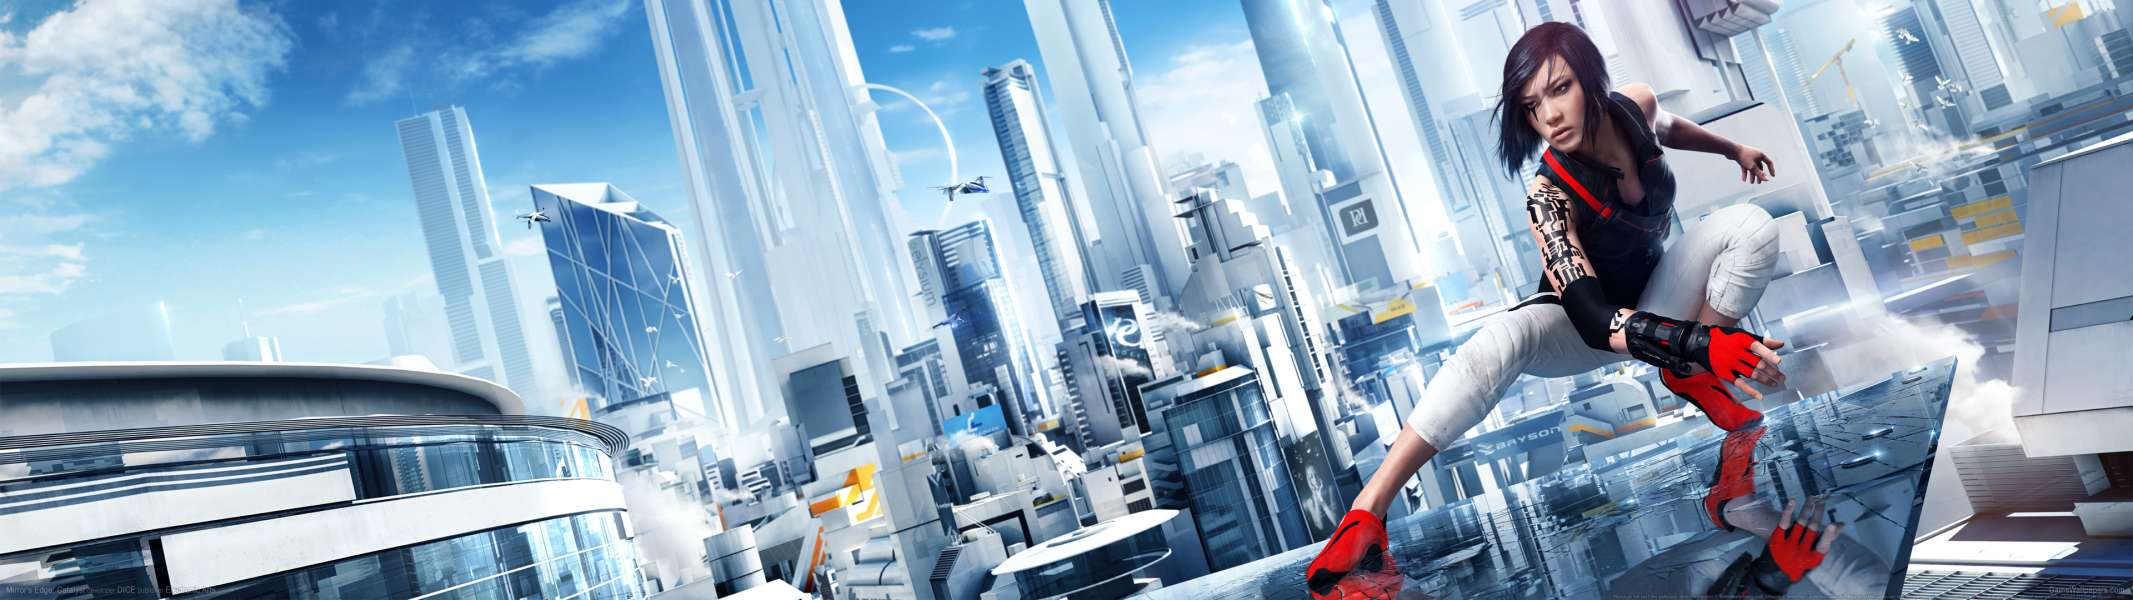 Mirror's Edge: Catalyst dual screen wallpaper or background